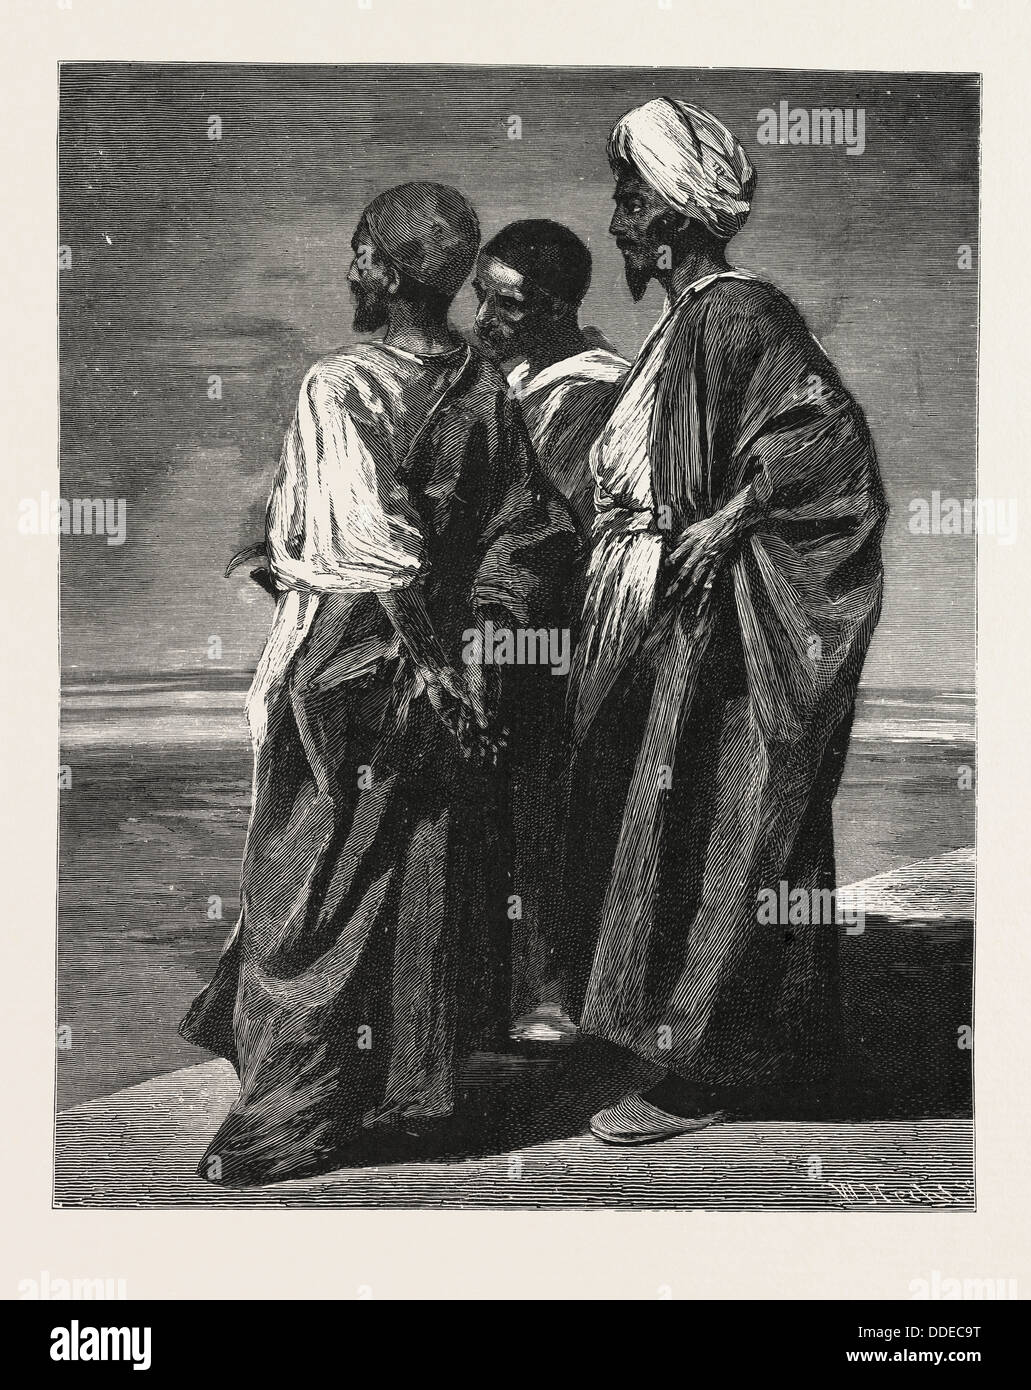 THE WATCHERS.  Egypt, engraving 1879 - Stock Image